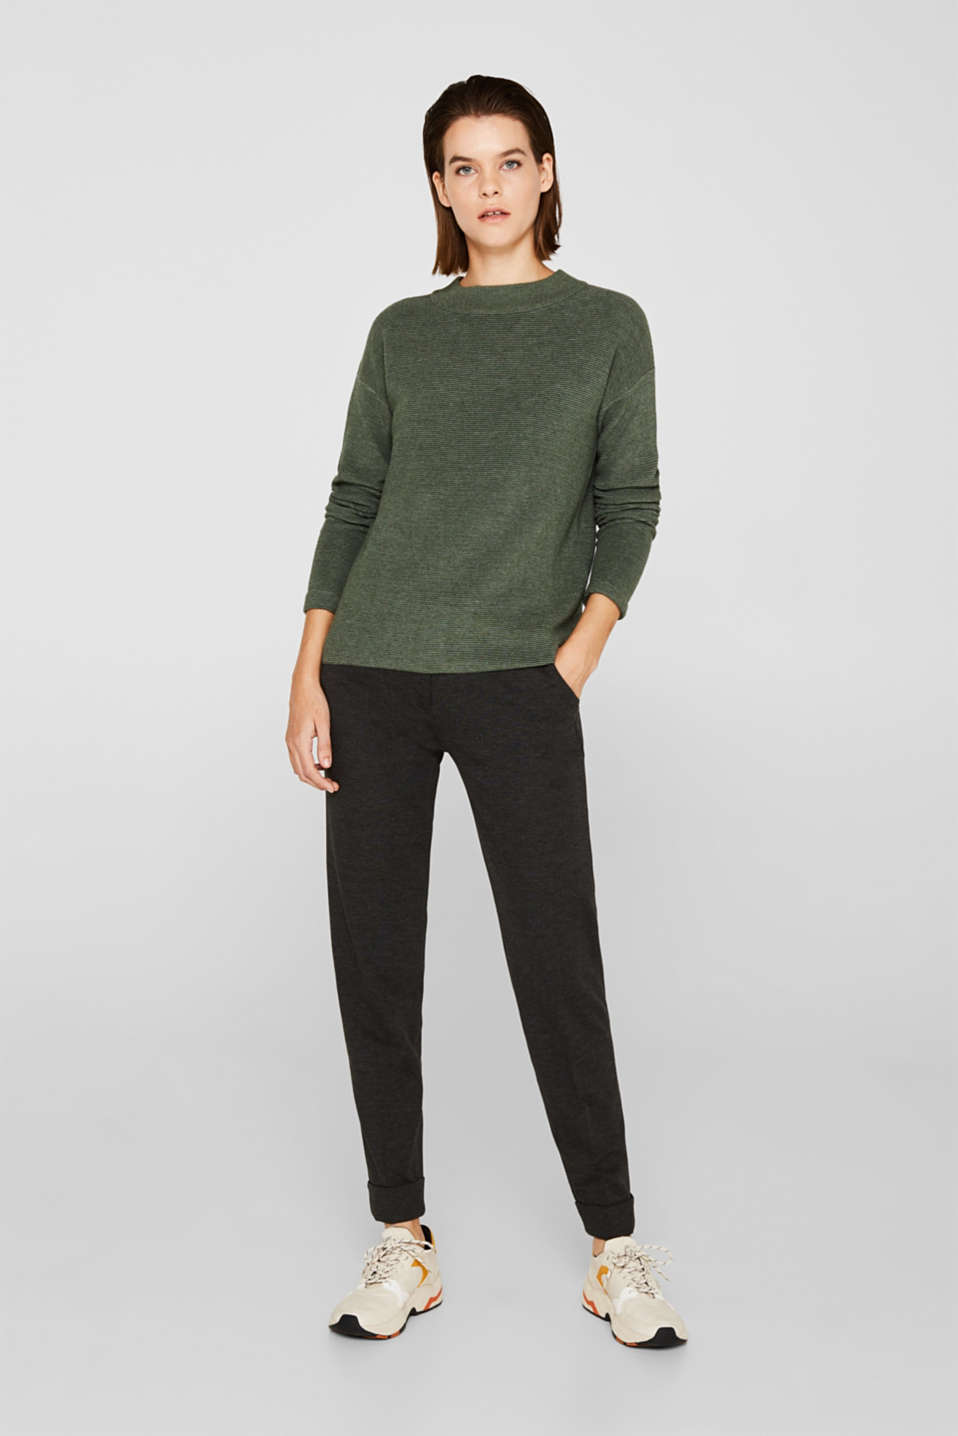 Jumper with a ribbed texture, KHAKI GREEN 5, detail image number 6